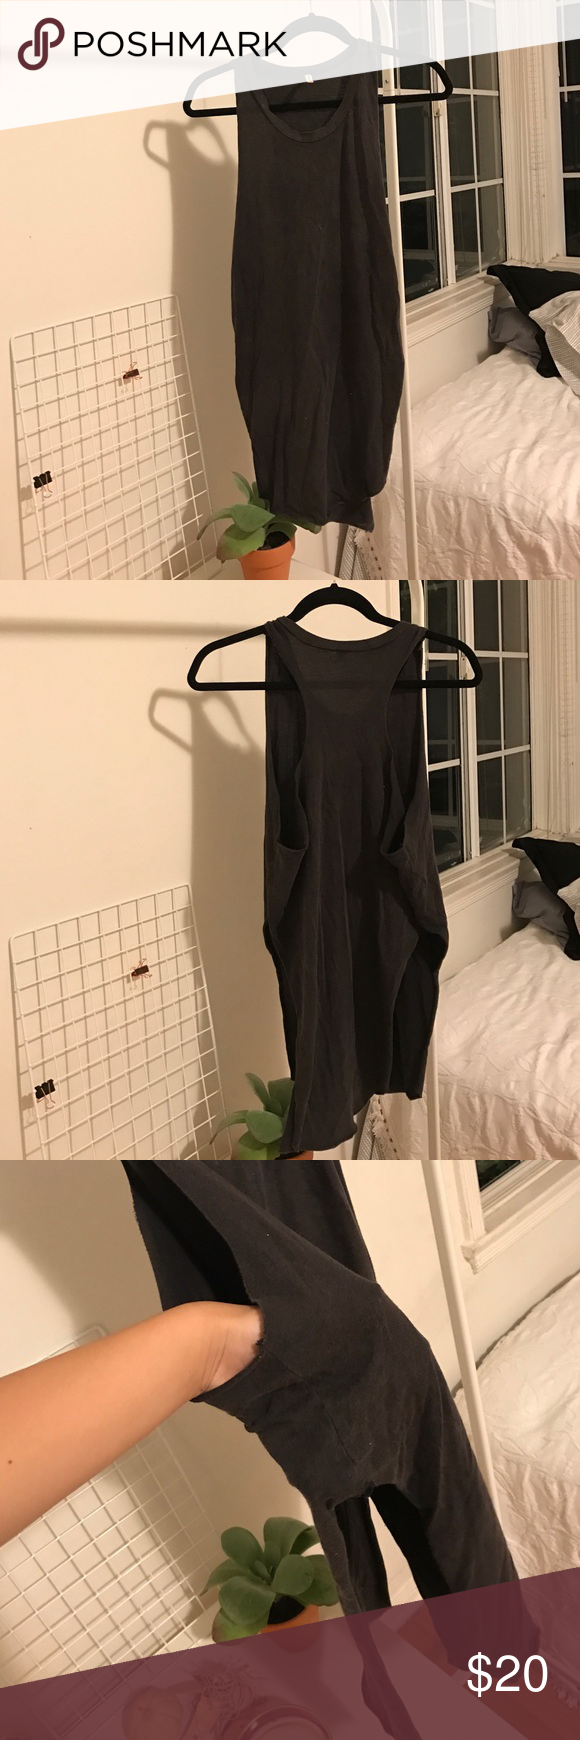 LF Emma & Sam Racerback Tank Top New, Never worn! Small Gray Racerback Tank Top W/ High Slits on the Sides. You can make a knot in the front & it's super cute & comfy!! LF Tops Muscle Tees